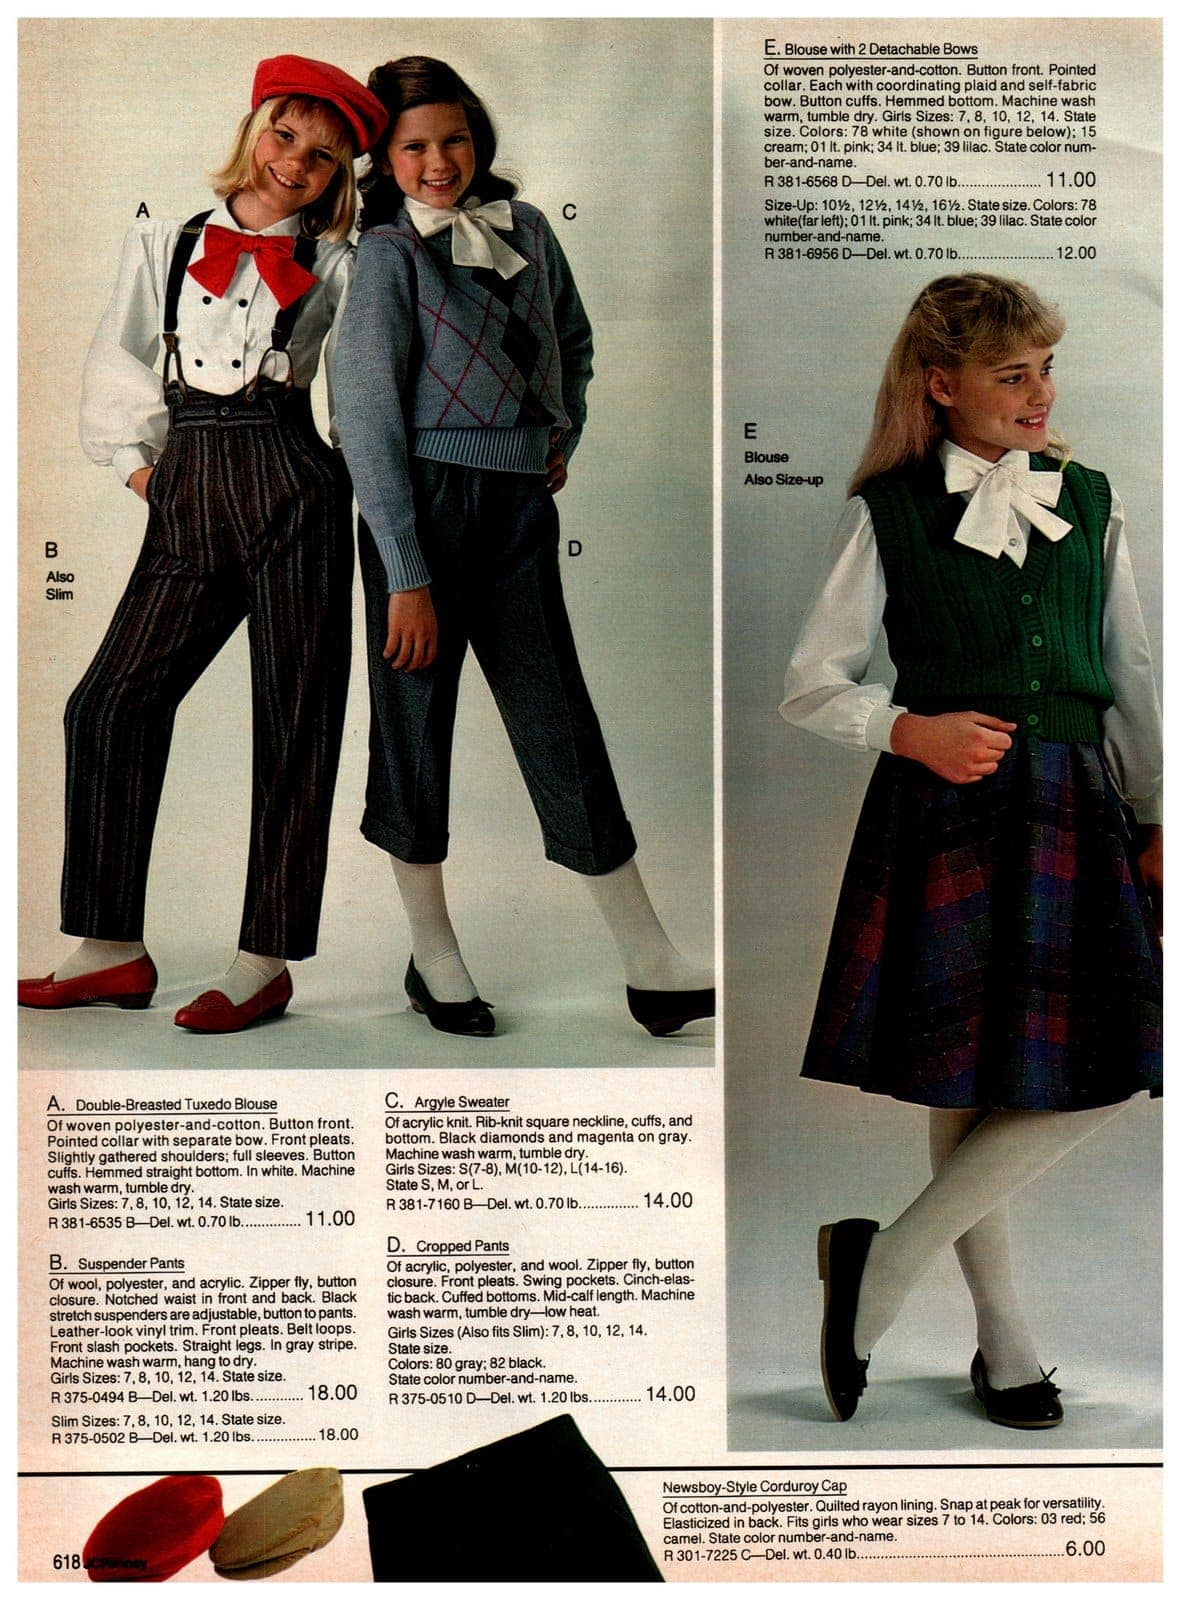 Double-breasted tuxedo blouses, suspender pants, argyle sweaters, cropped pants and blouses with detachable bows